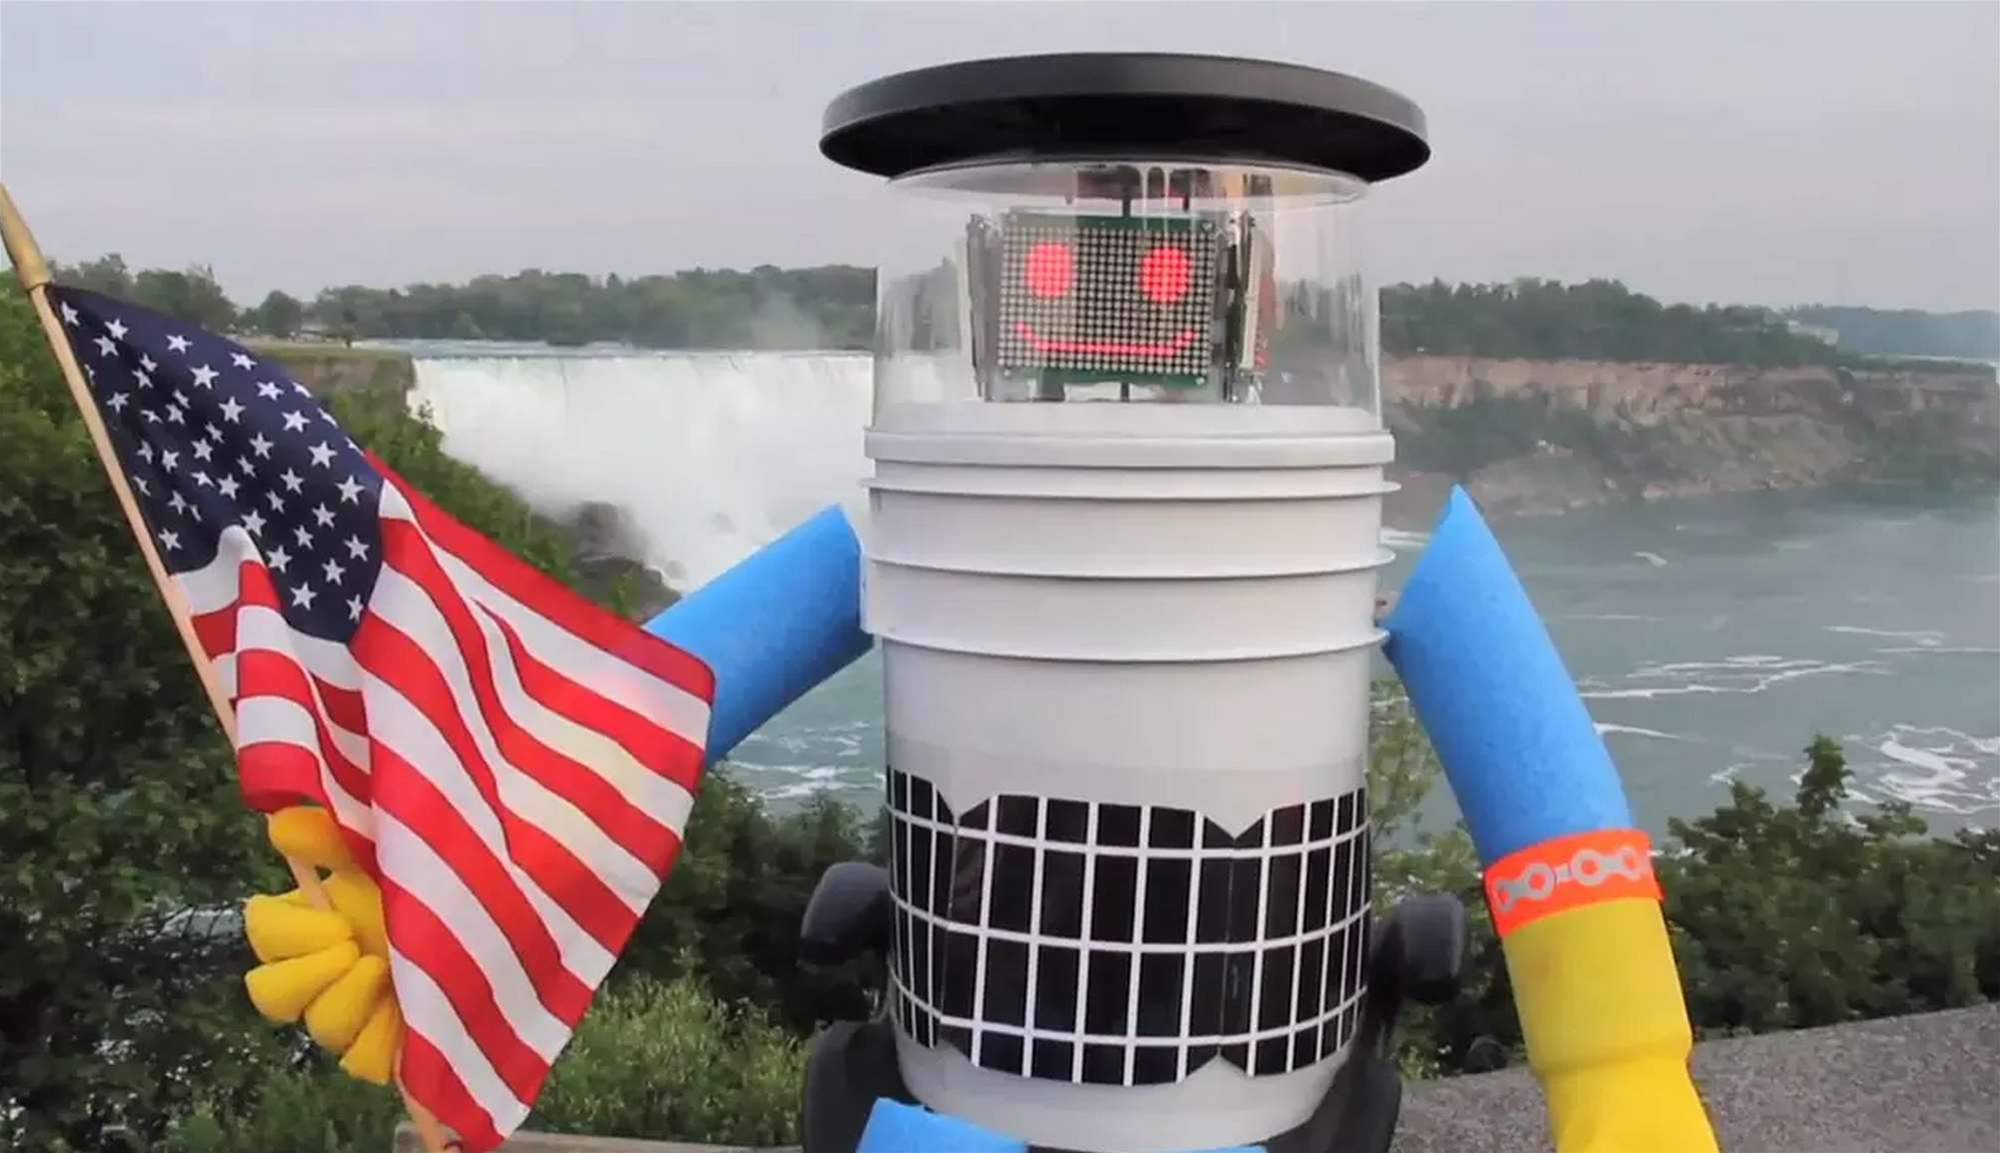 There's A Robot Hitchhiking Across The United States